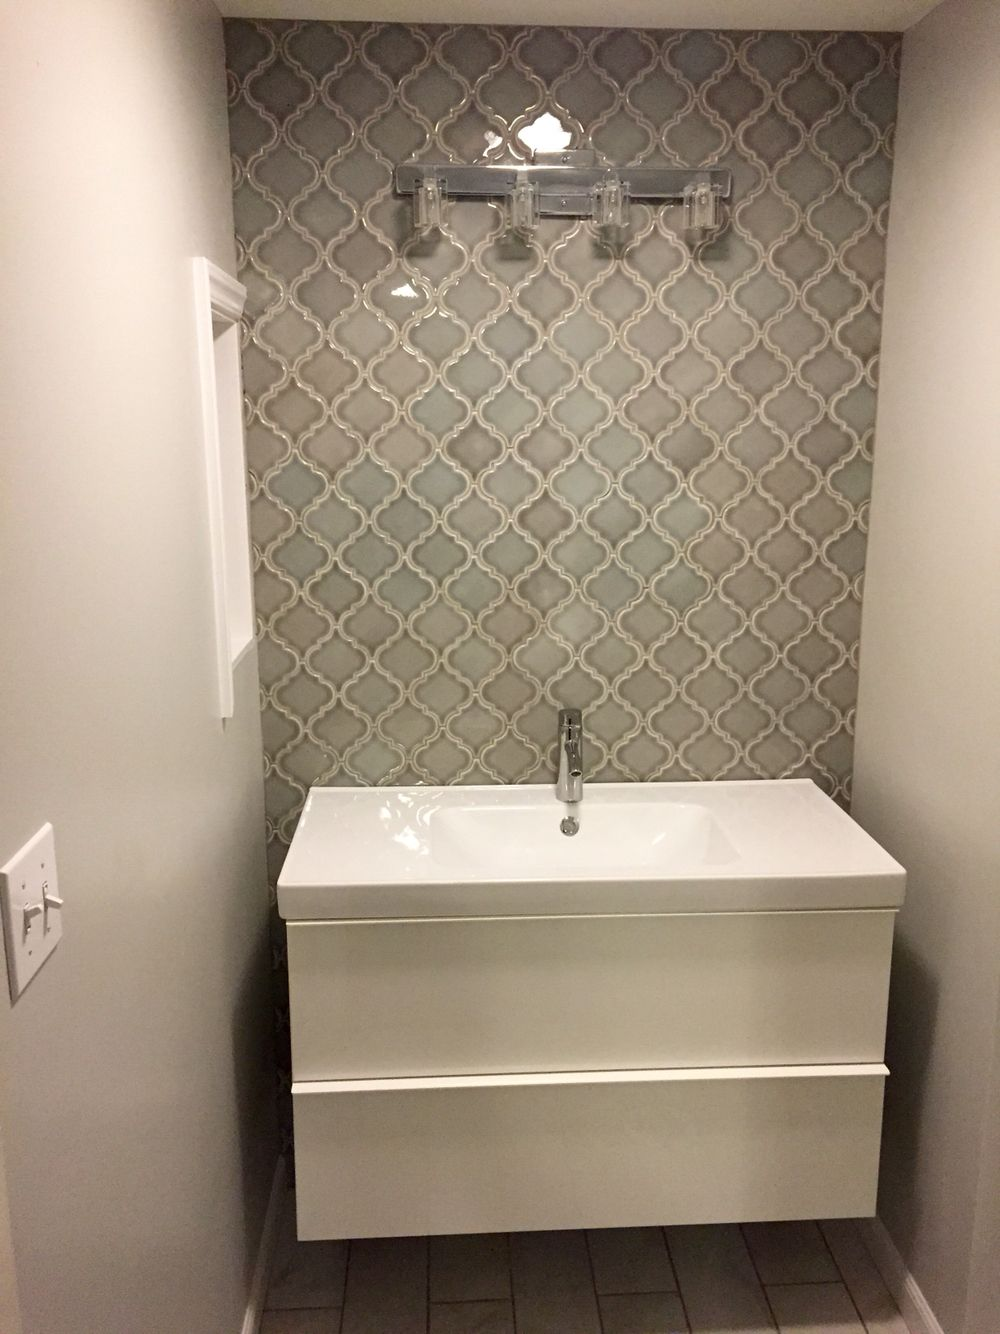 Home Depot Dove gray Arabesque tile bathroom wall. | Bathroom tiles ...